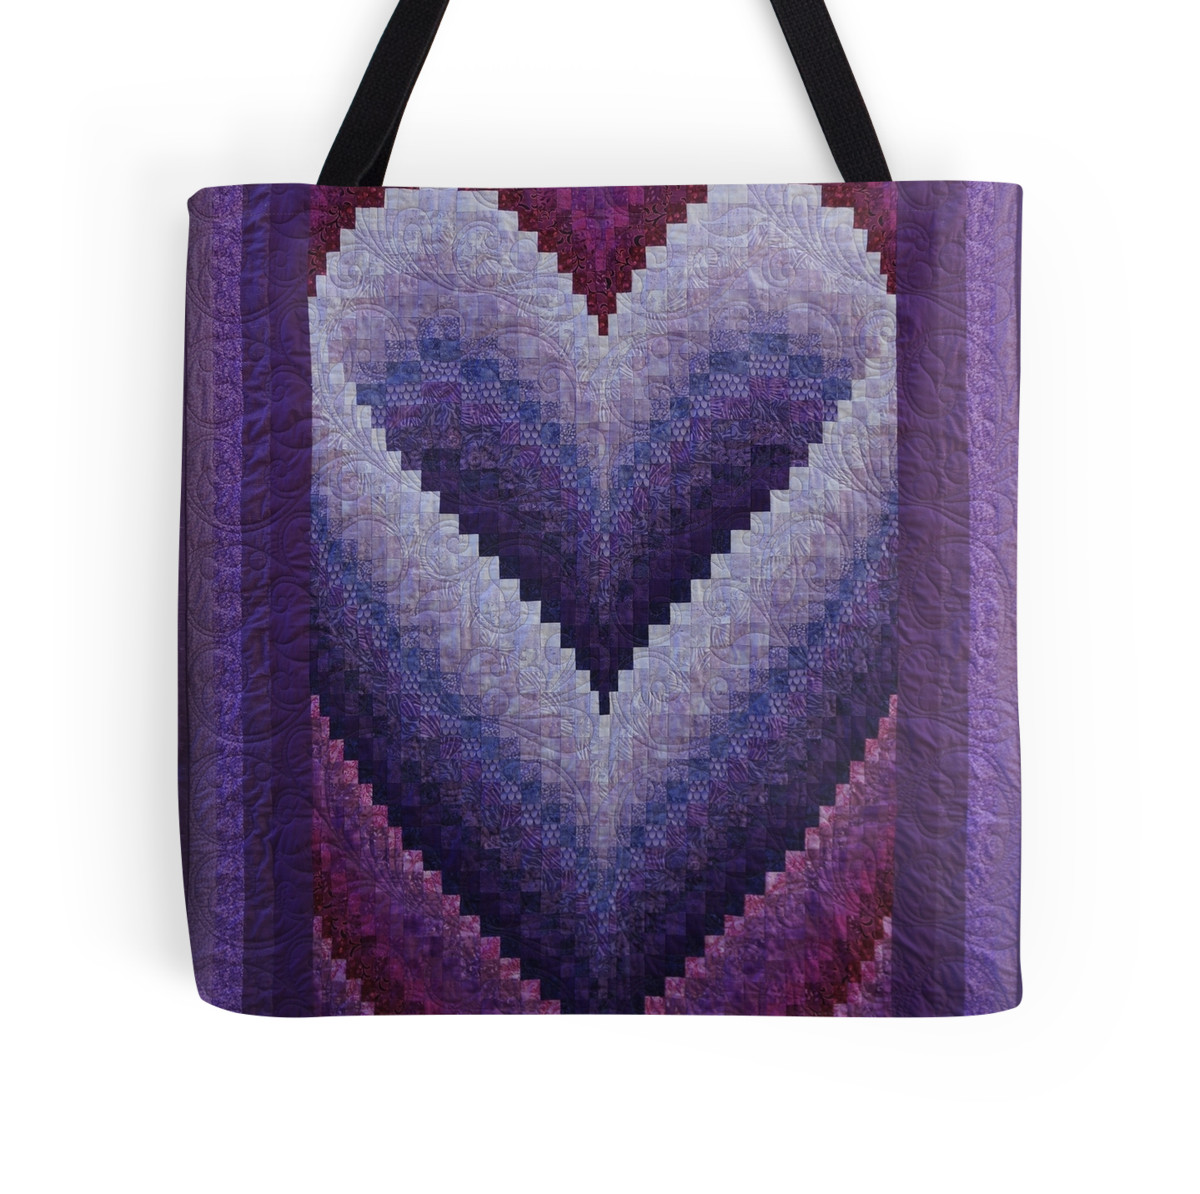 STUNNING HONEYMOON HEART BARGELLO QUILT HANDMADE BY RENATA GREENE ... : heart bargello quilt pattern - Adamdwight.com